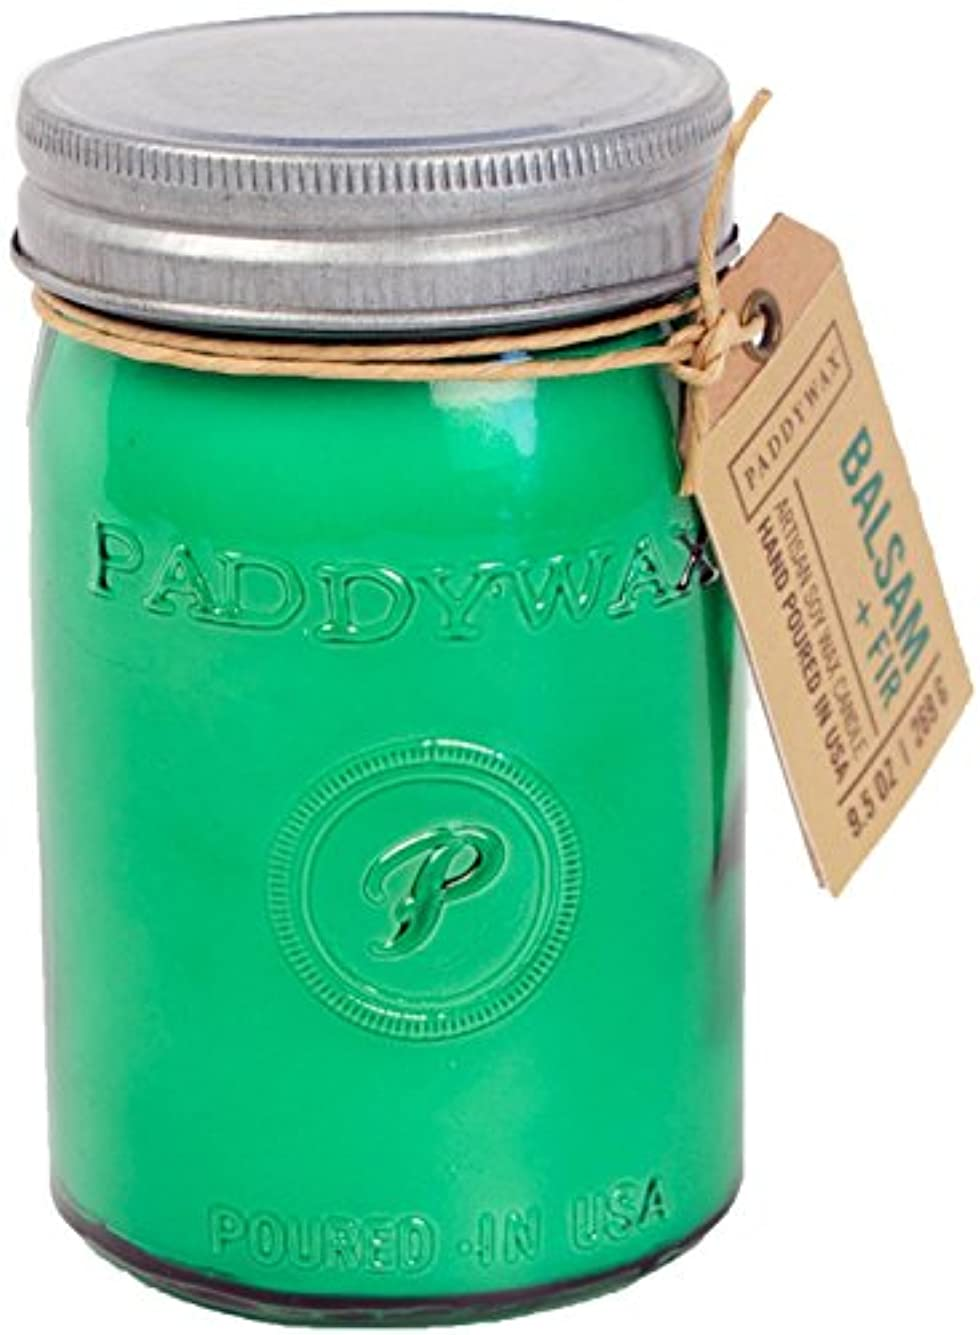 吸う行進絶望的なPaddywax Relish Collection Jar Candle, Large, Balsam Fir [並行輸入品]